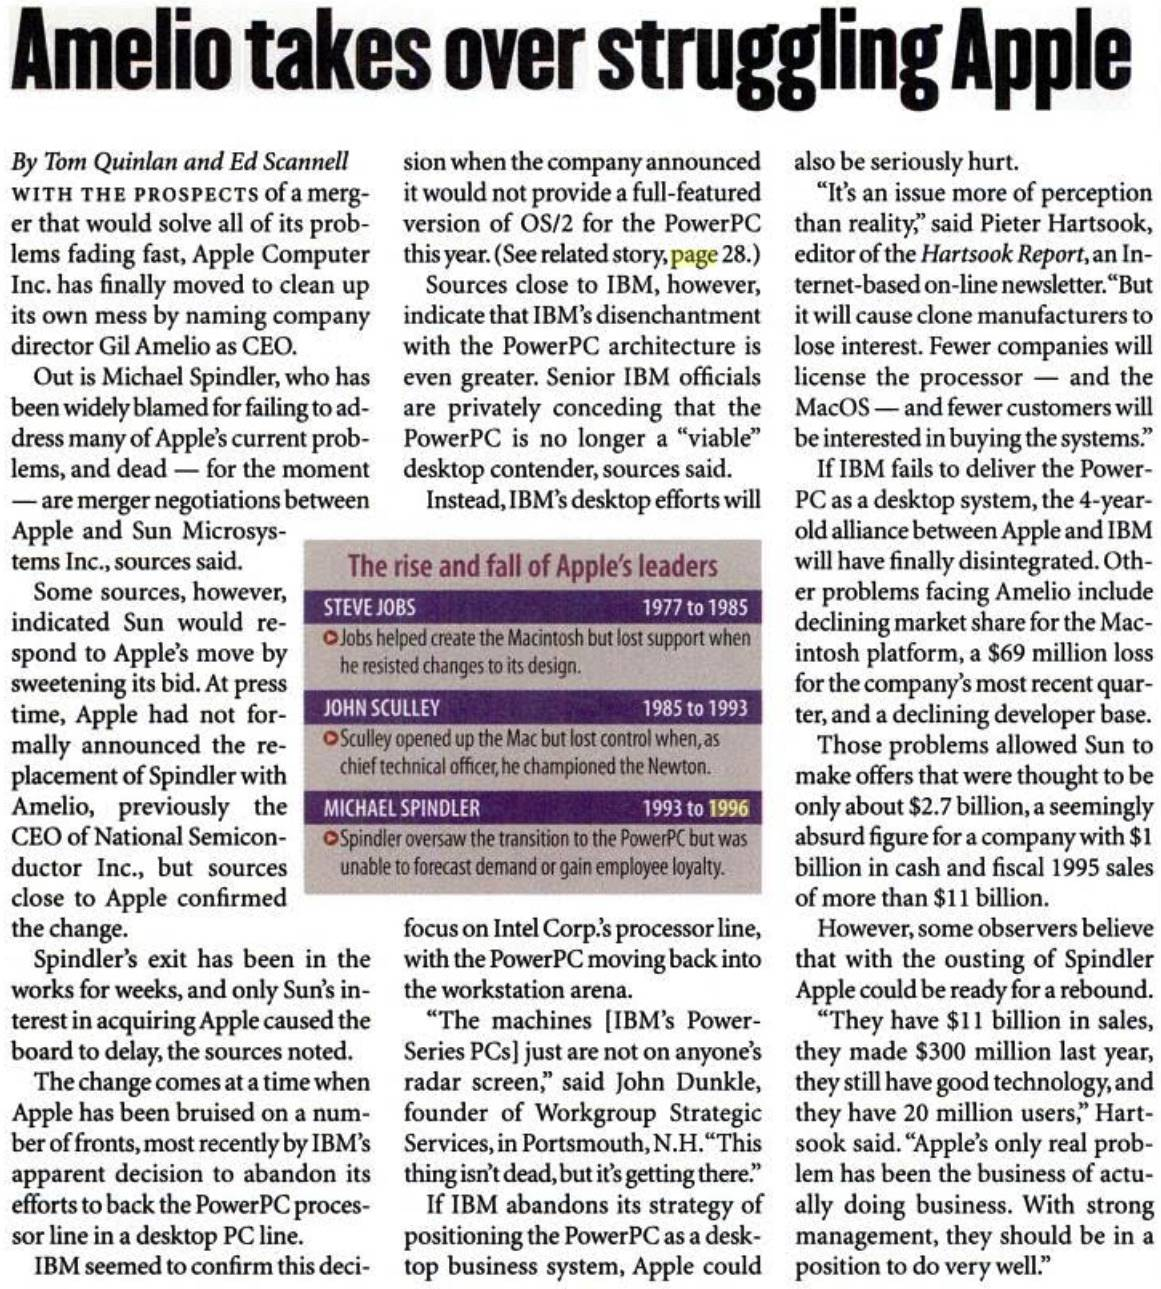 How the news of Gil Amelio taking over as Apple CEO was reported by InfoWorld in 1996